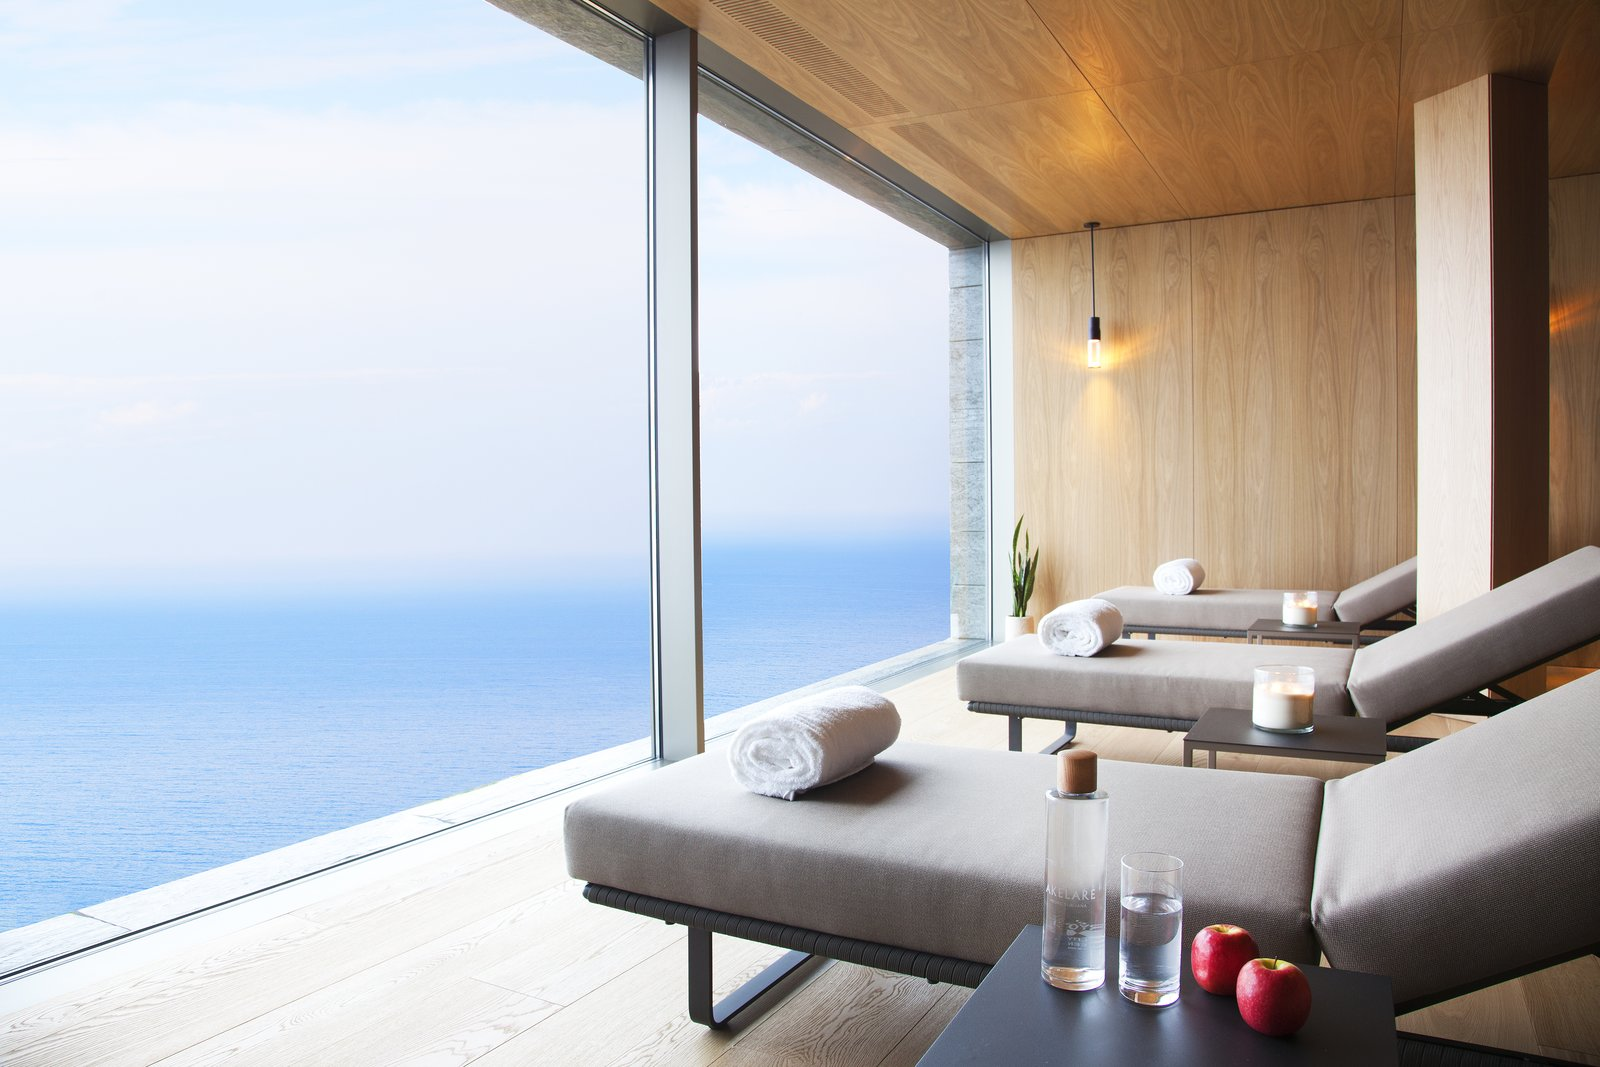 Living Room, Pendant Lighting, Chair, Recliner, and Light Hardwood Floor Kettal lounge chairs are featured in the wellness center.  Photo 8 of 13 in Spain's Basque Coast Gets a New Modern Hotel With a Michelin-Starred Restaurant